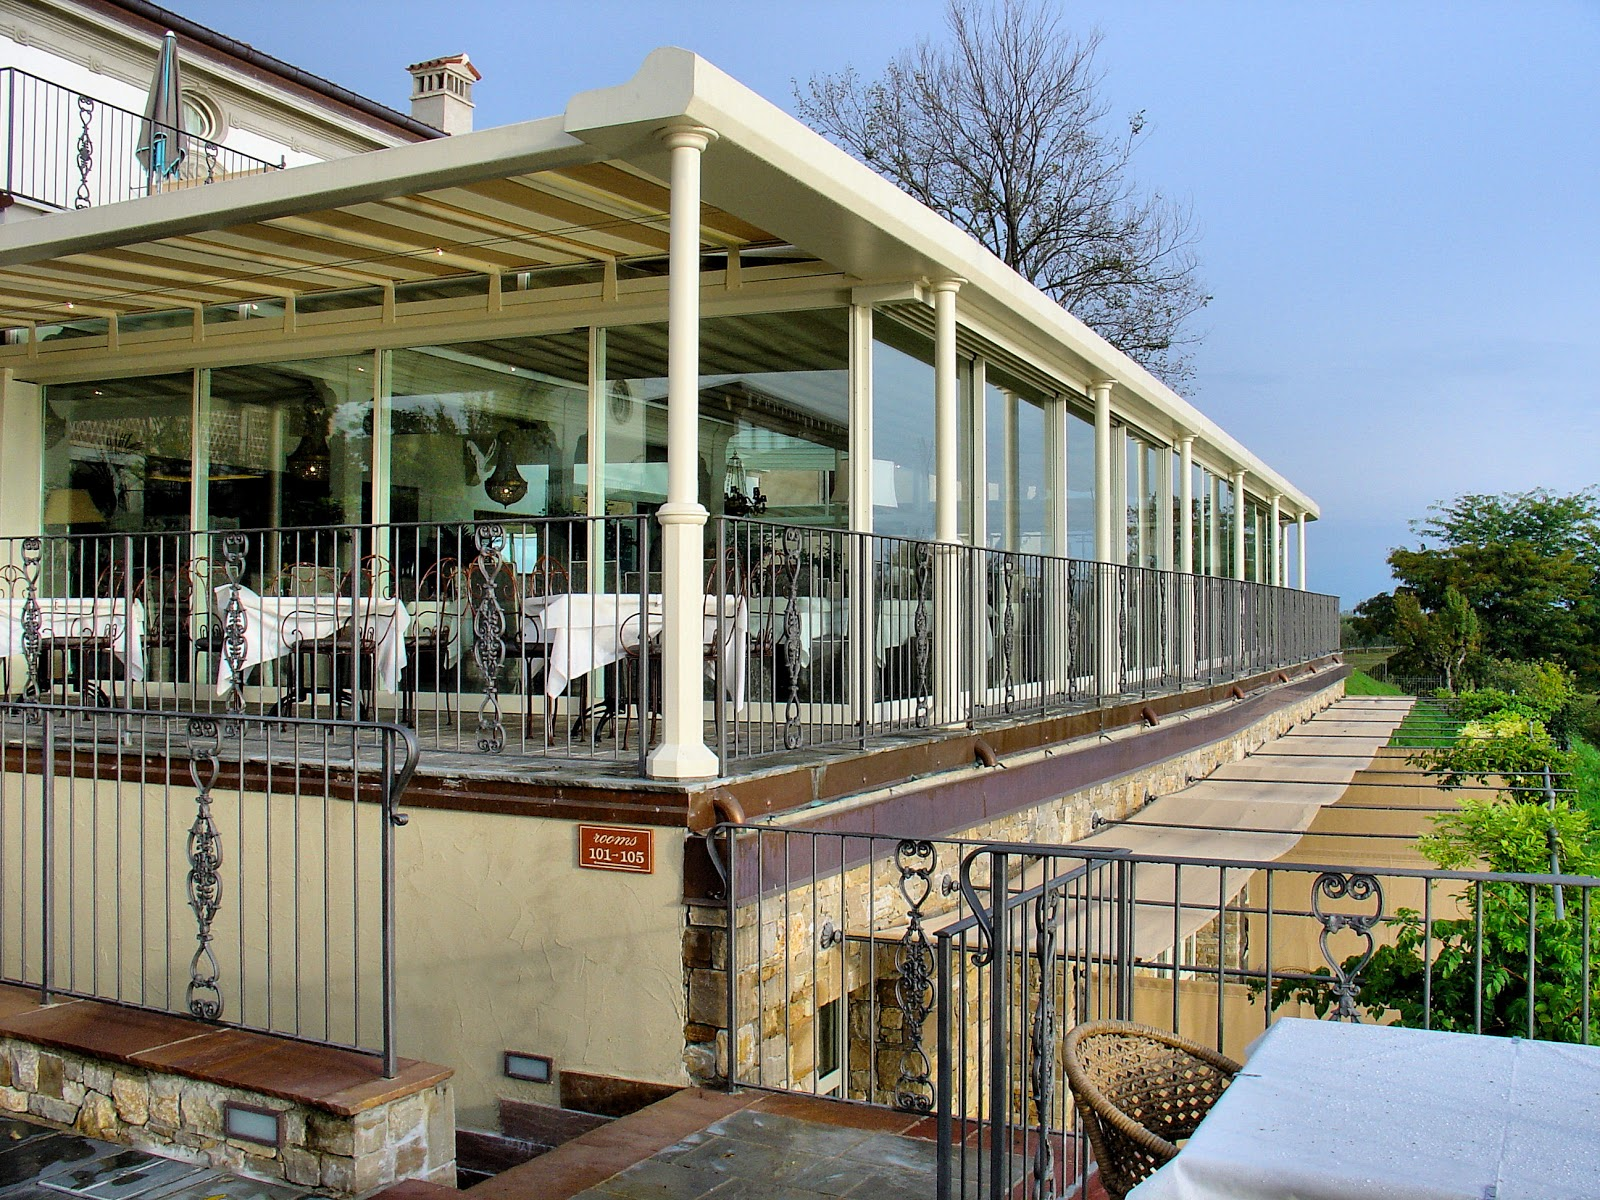 Exterior view of the Ristorante Ardea at Le Ali del Frassino.